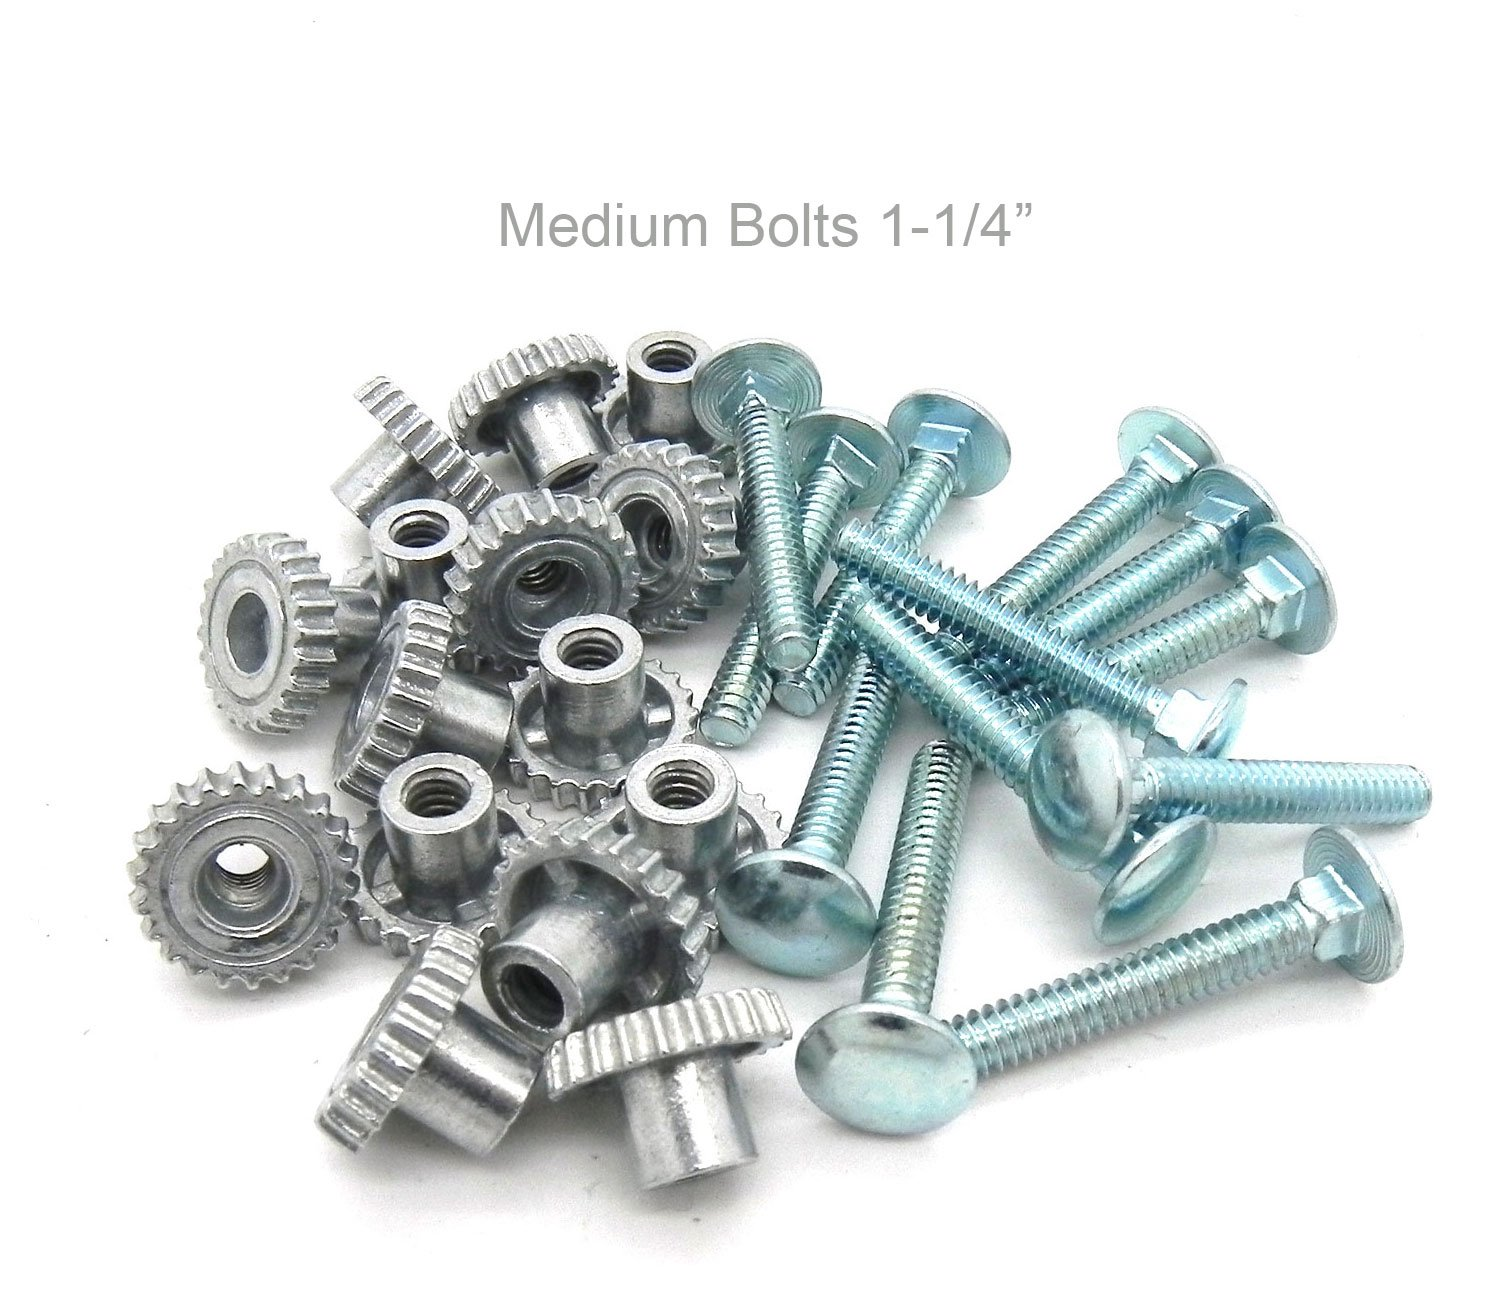 Pet Carrier Metal Fasteners Nuts Bolts (1-1 4 Medium Bolts, 16 Pack)